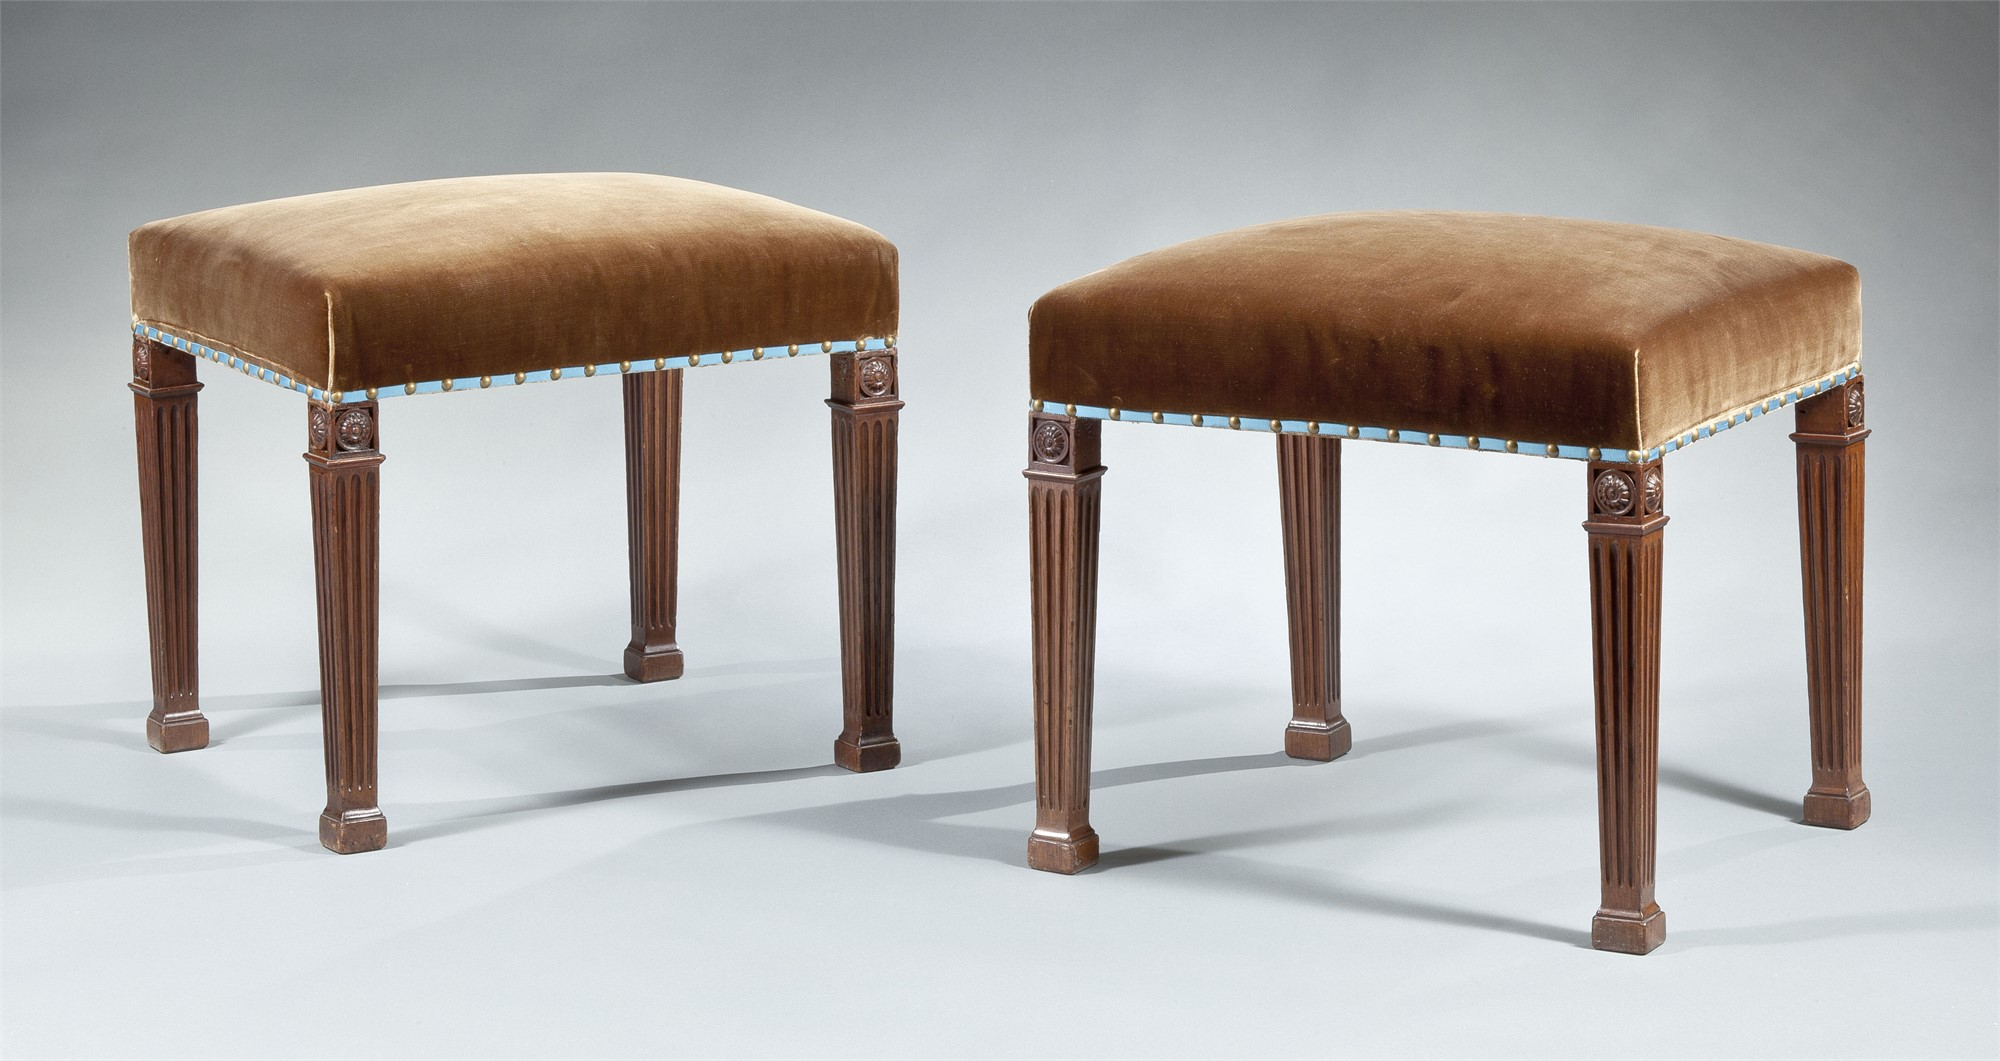 PAIR OF GEORGE III MAHOGANY STOOLS ATTRIB. TO CHIPPENDALE